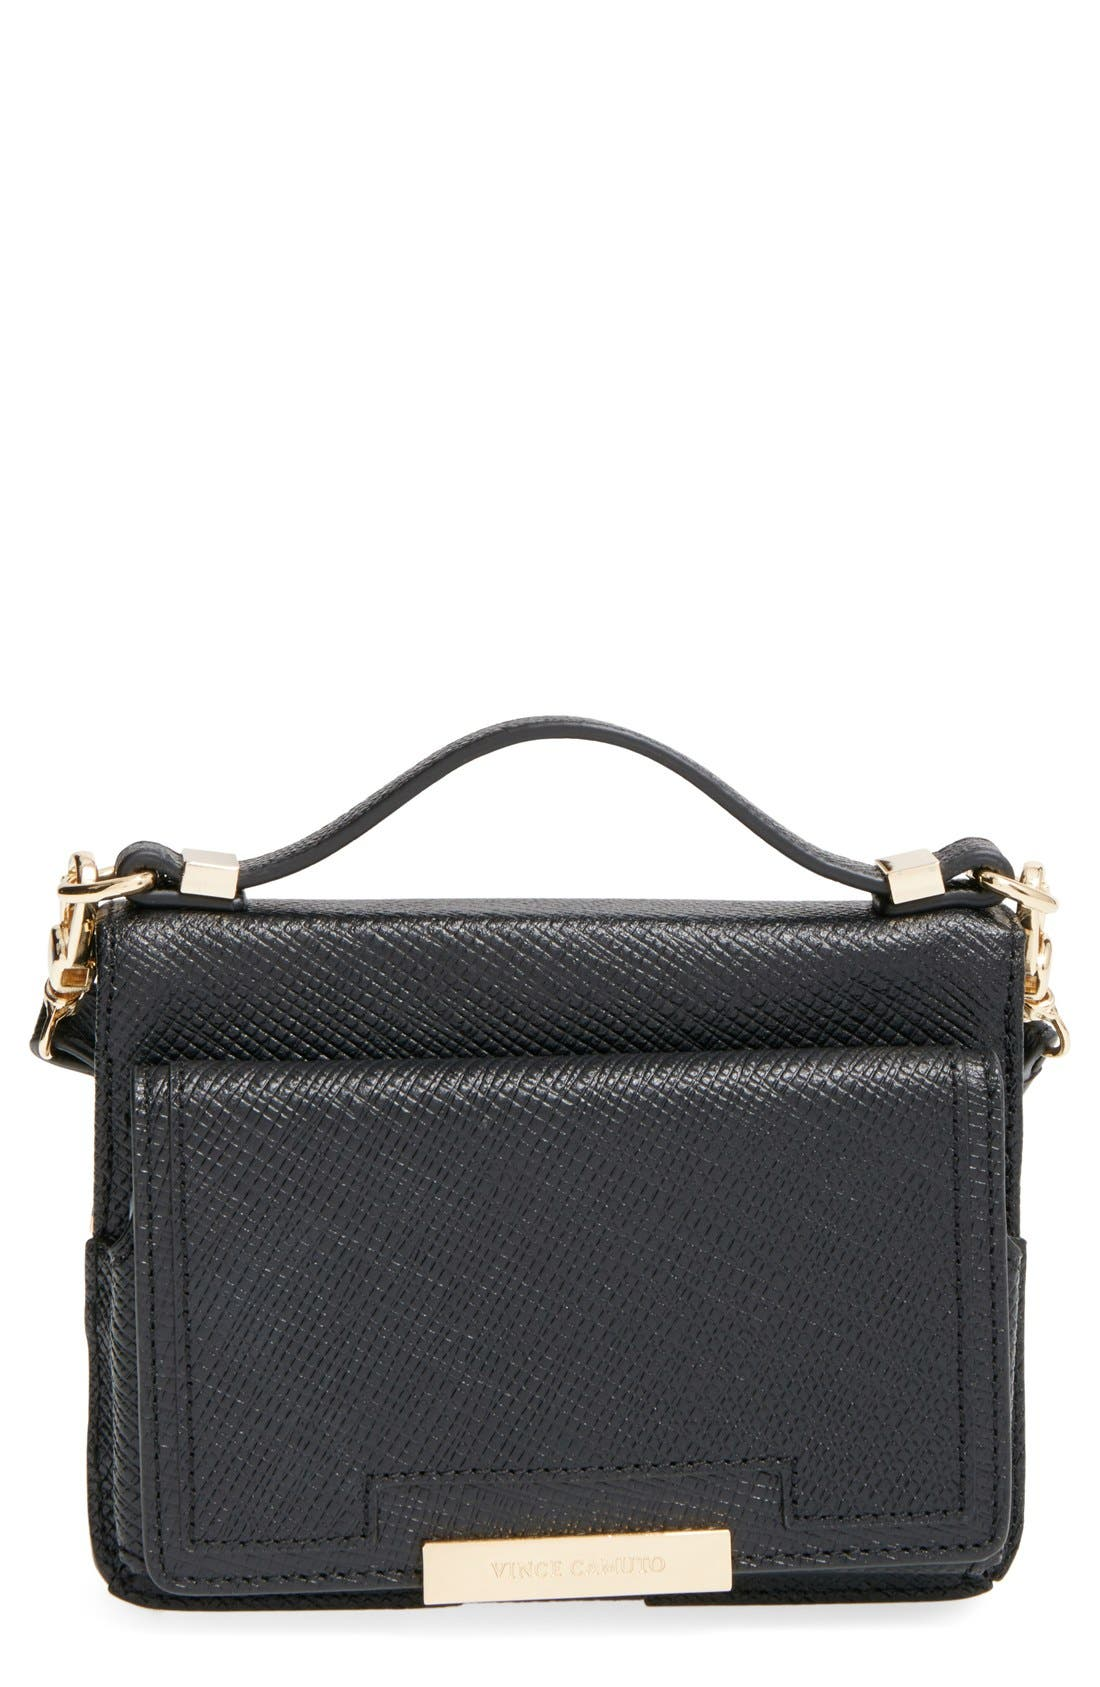 Alternate Image 1 Selected - Vince Camuto 'Small Mila' Crossbody Bag